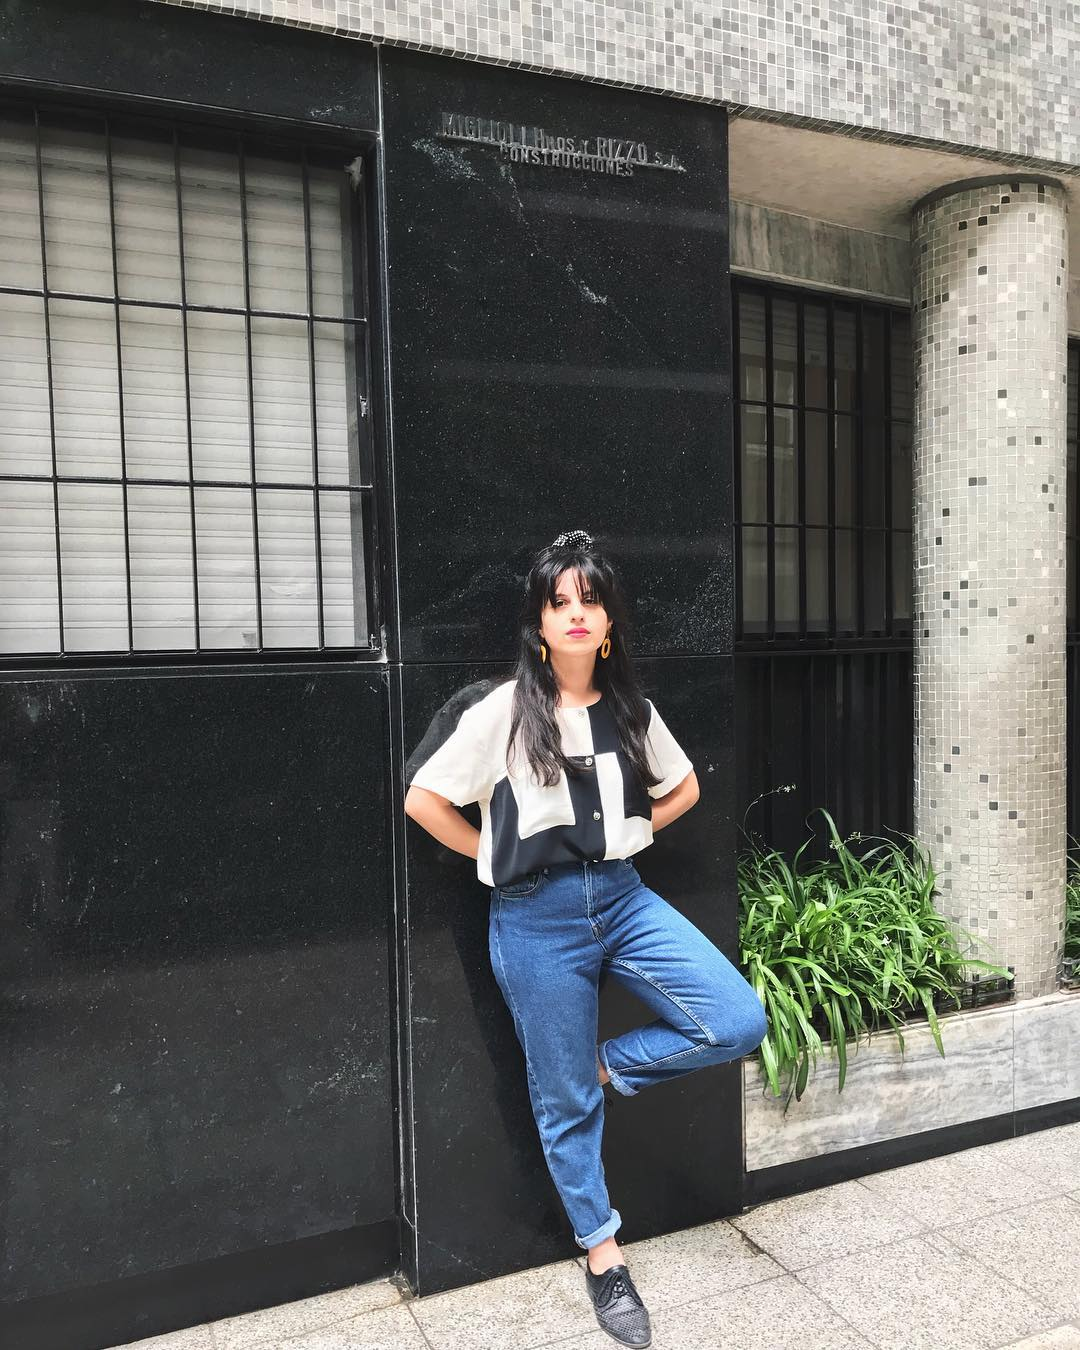 90s sitcom star. The blouse is a vintage find from a charitable organization in Buenos Aires.